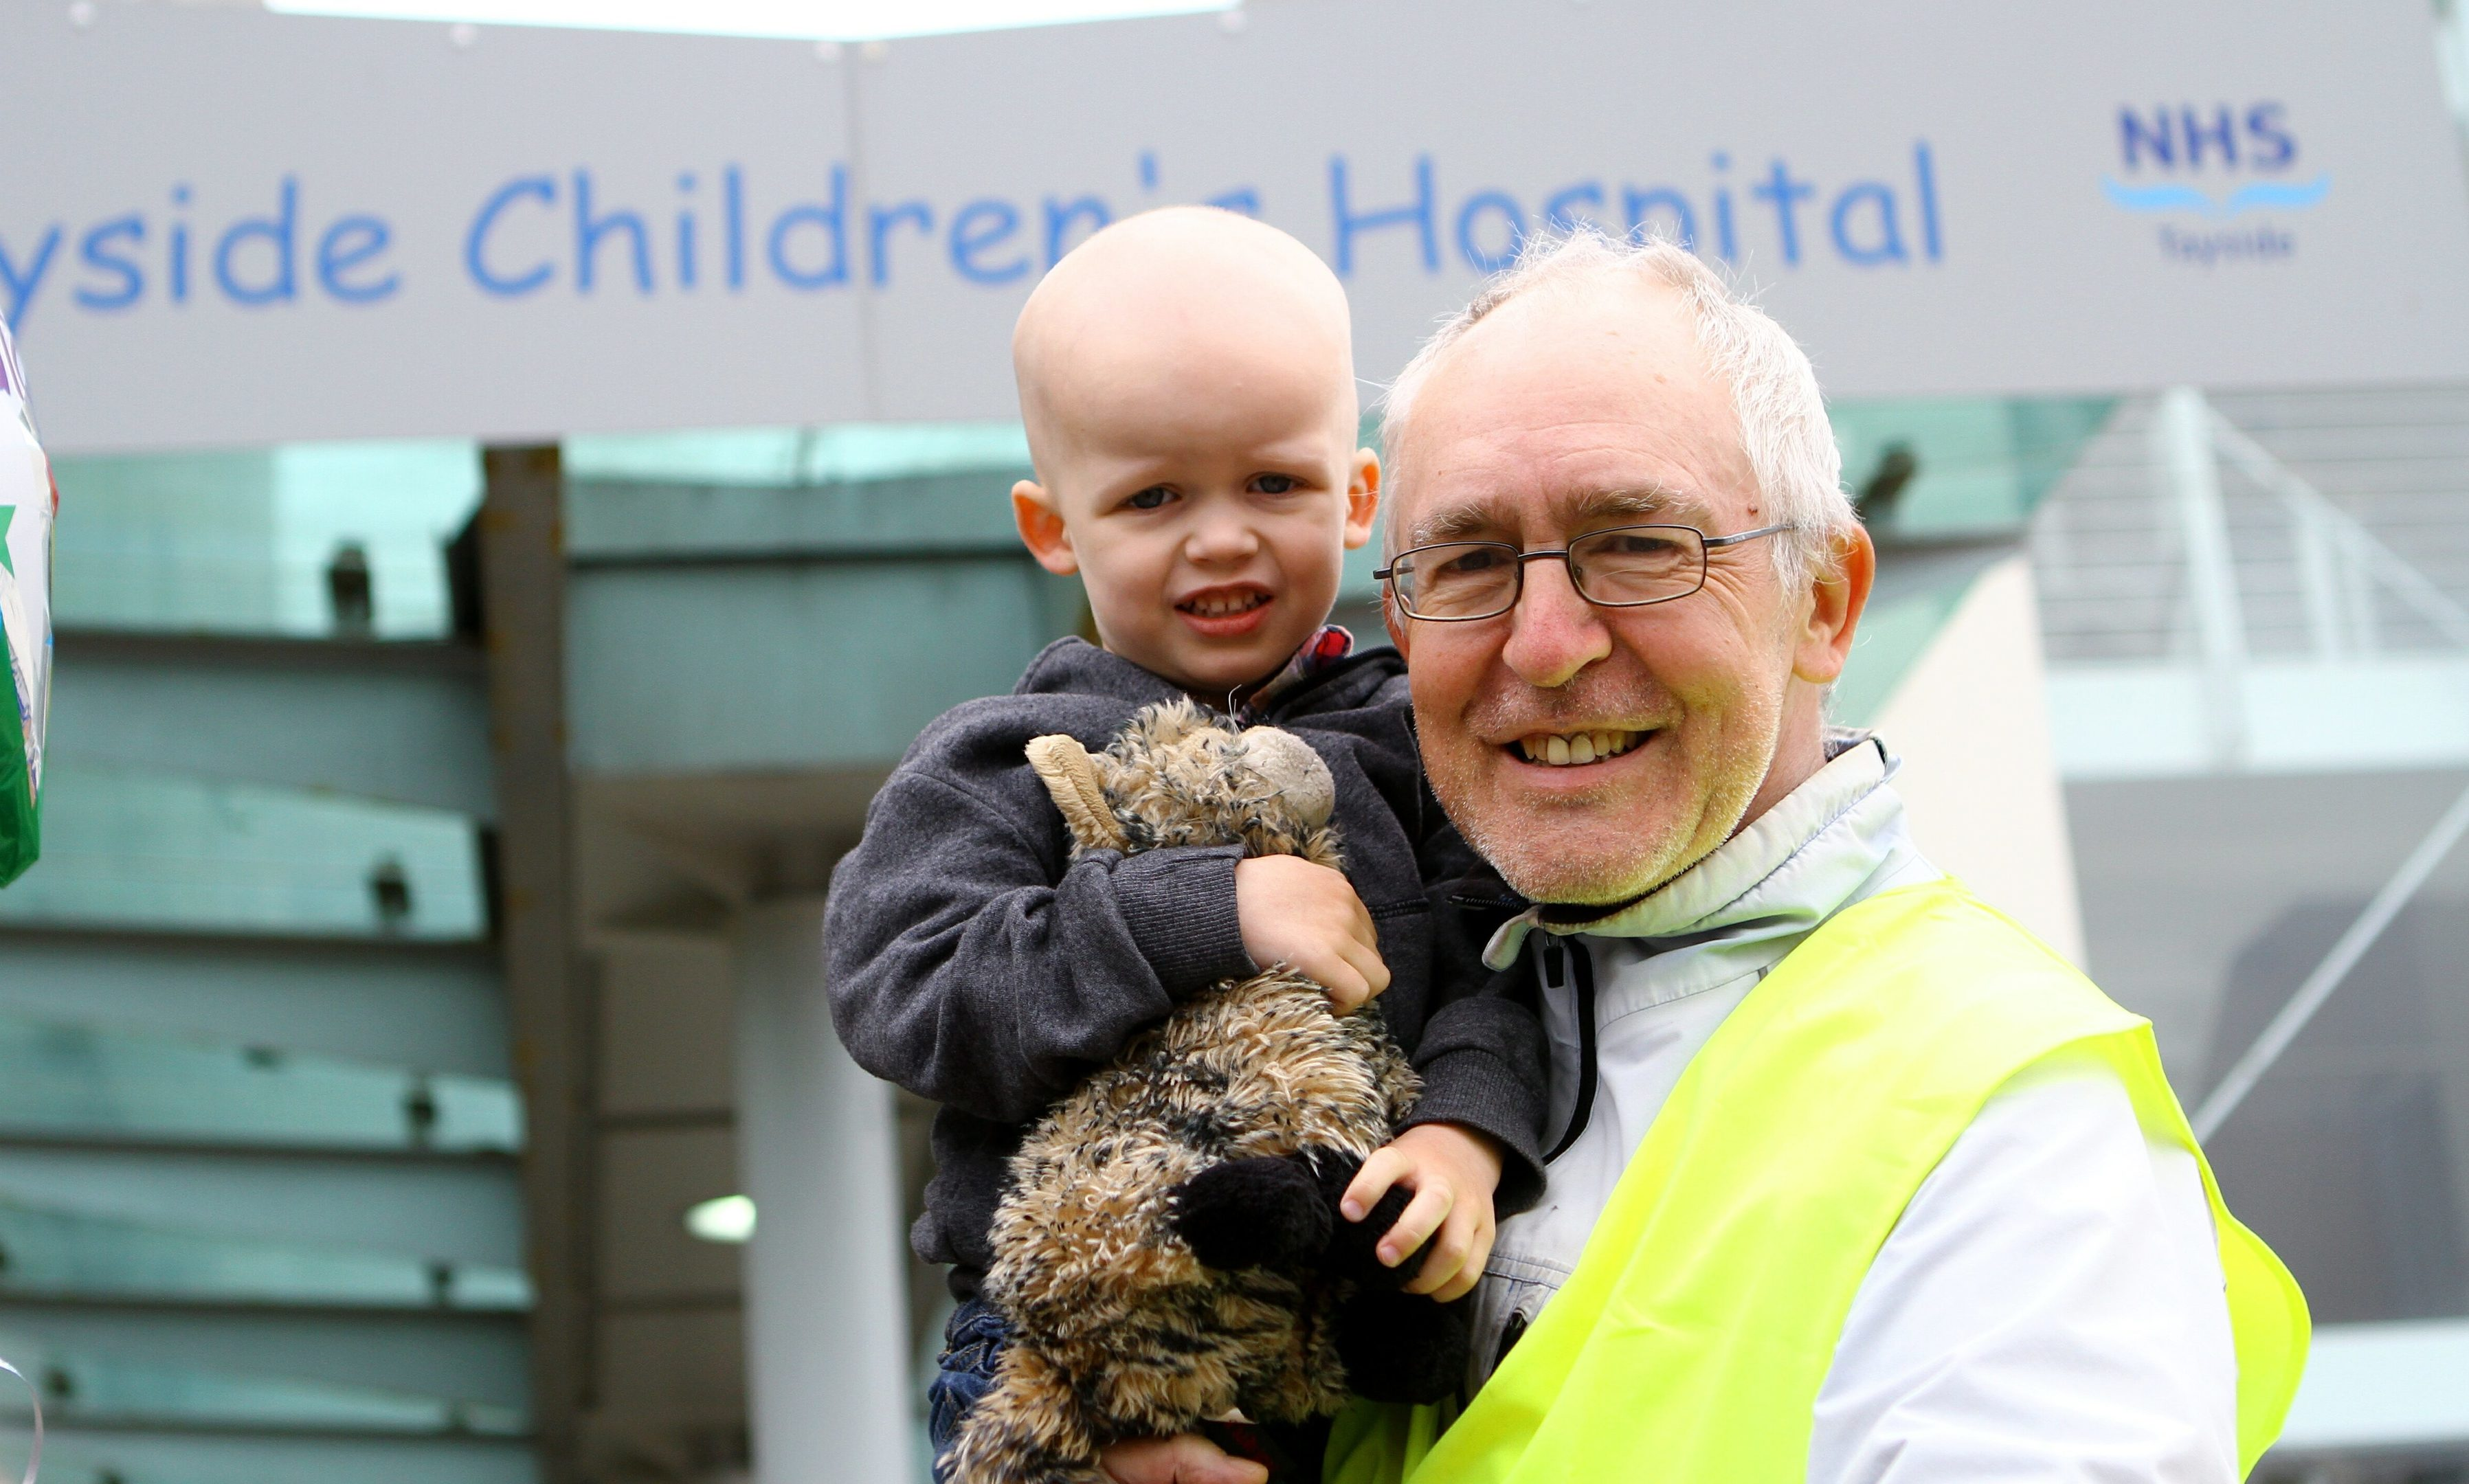 Jon Harle at the Tayside Children's Hospital with his grandson Ezekiel King, age 2.